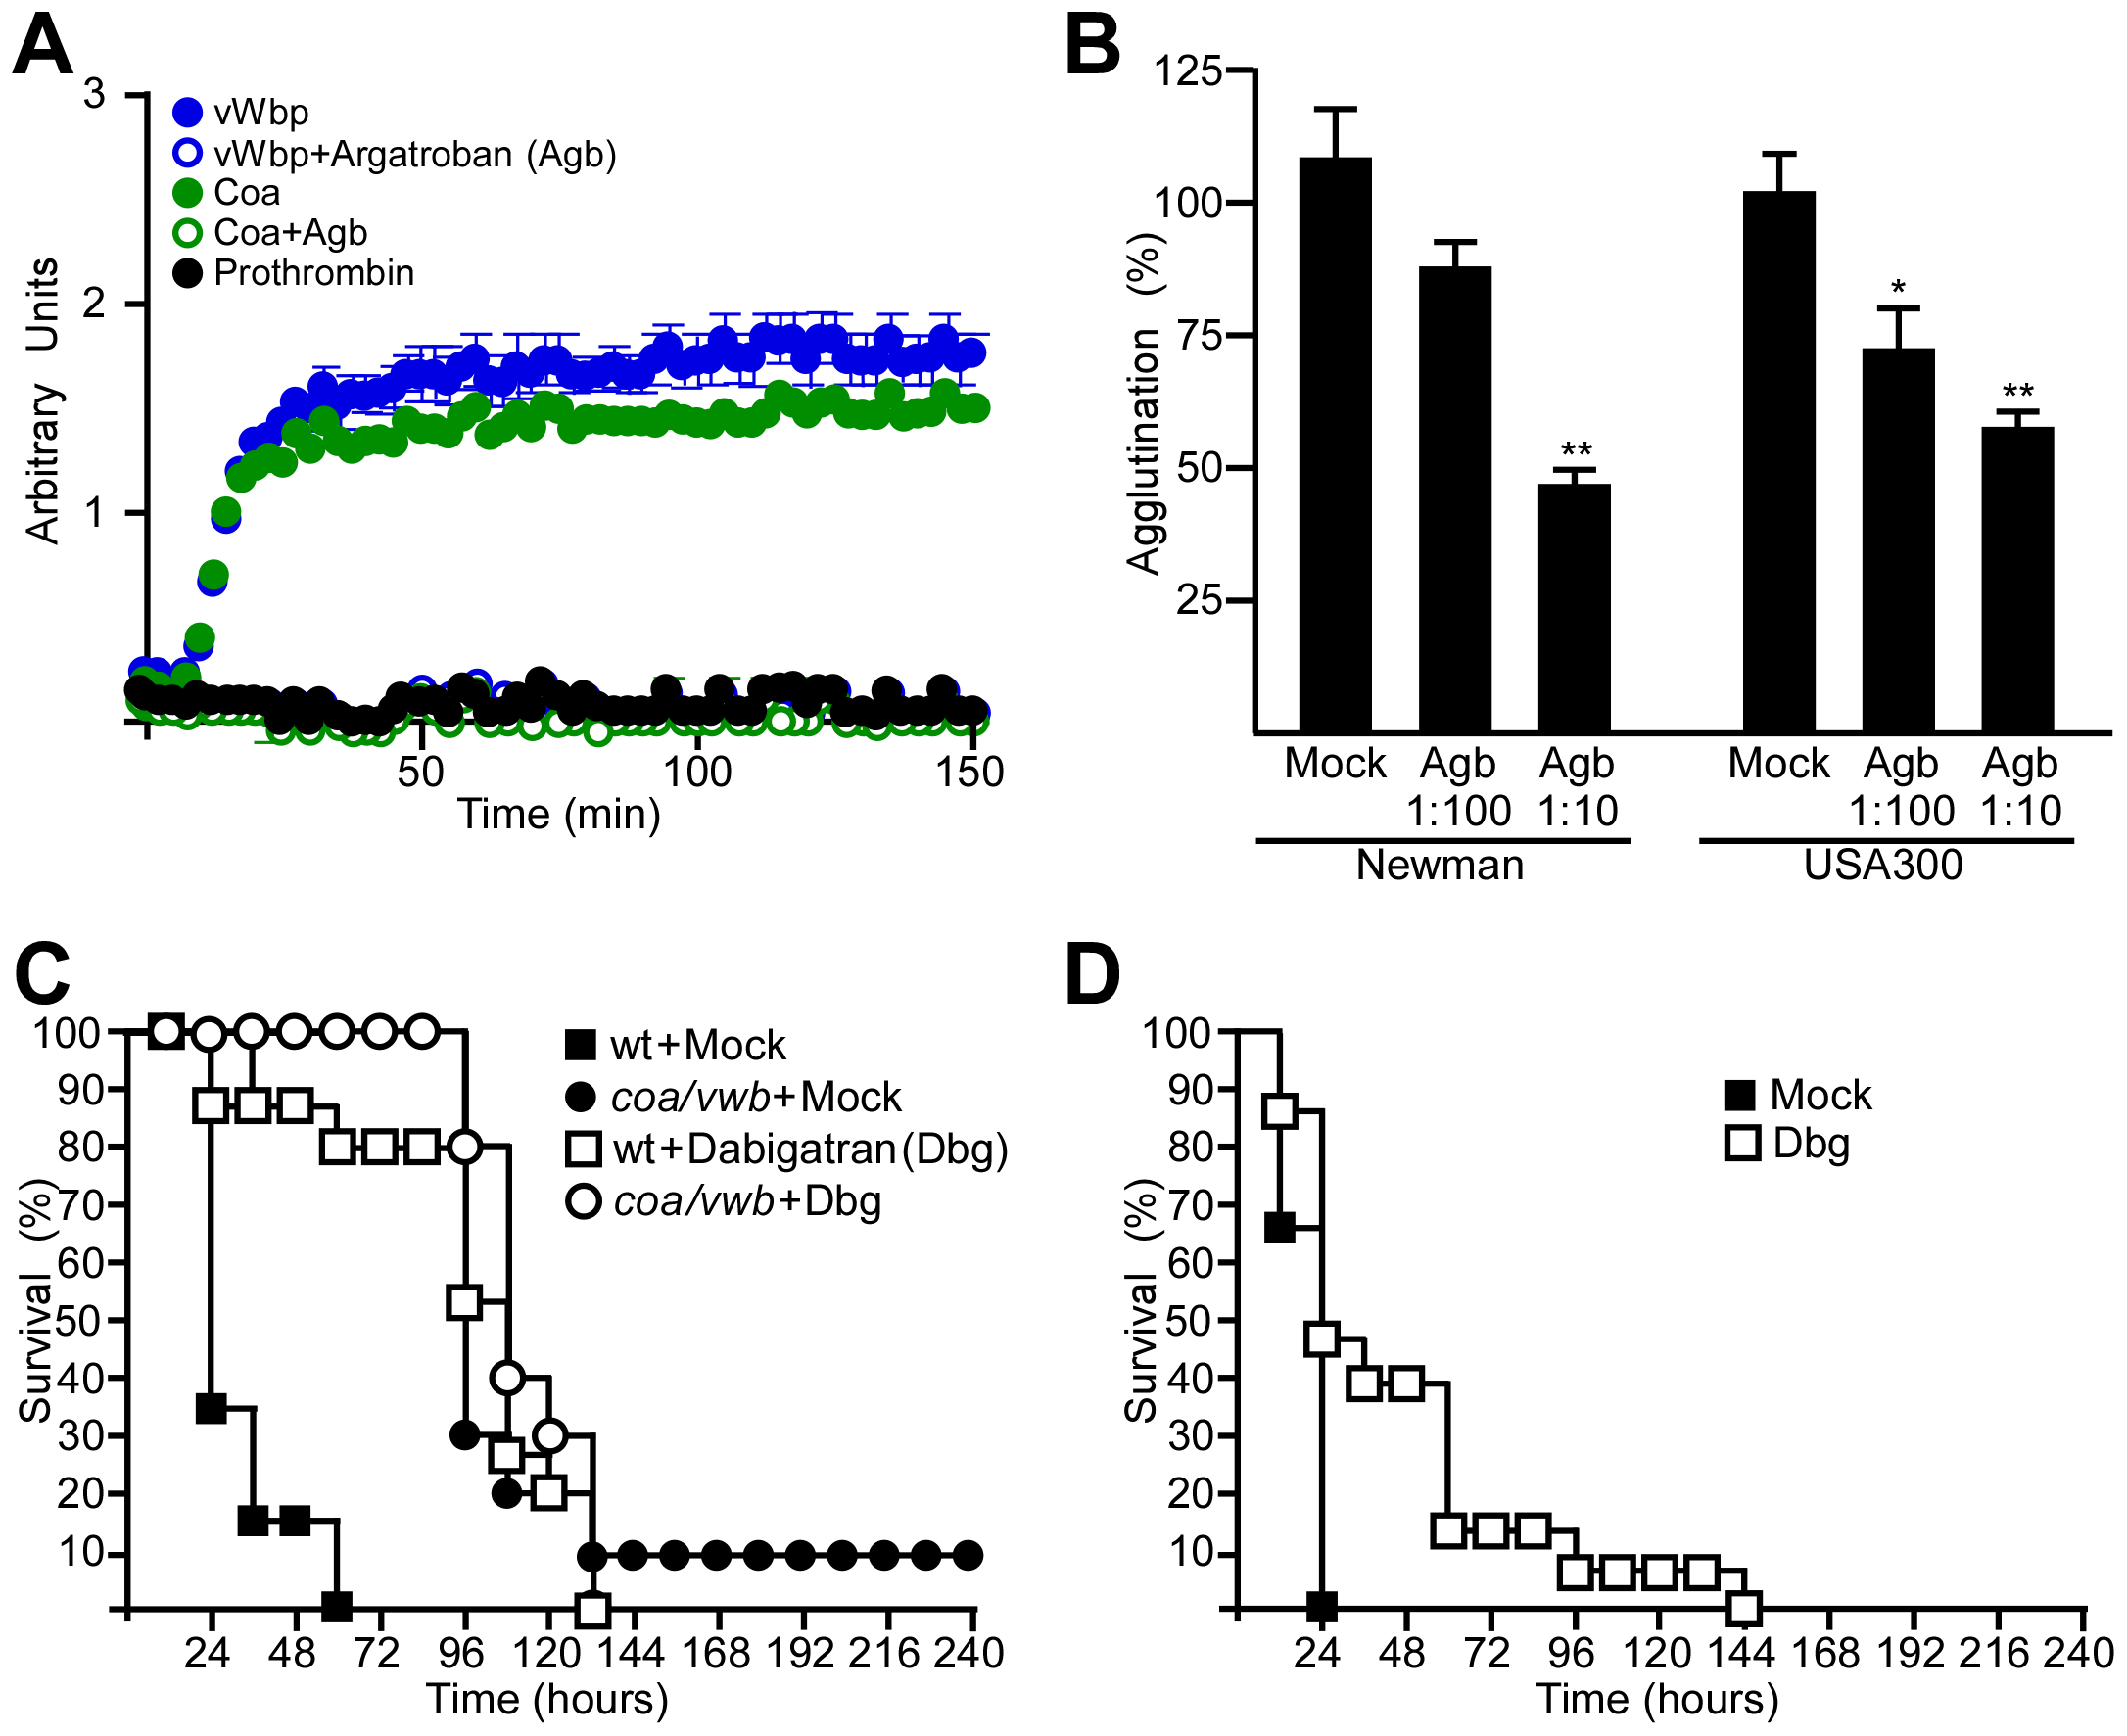 Direct thrombin inhibitors block a key step in staphylococcal pathogenesis.